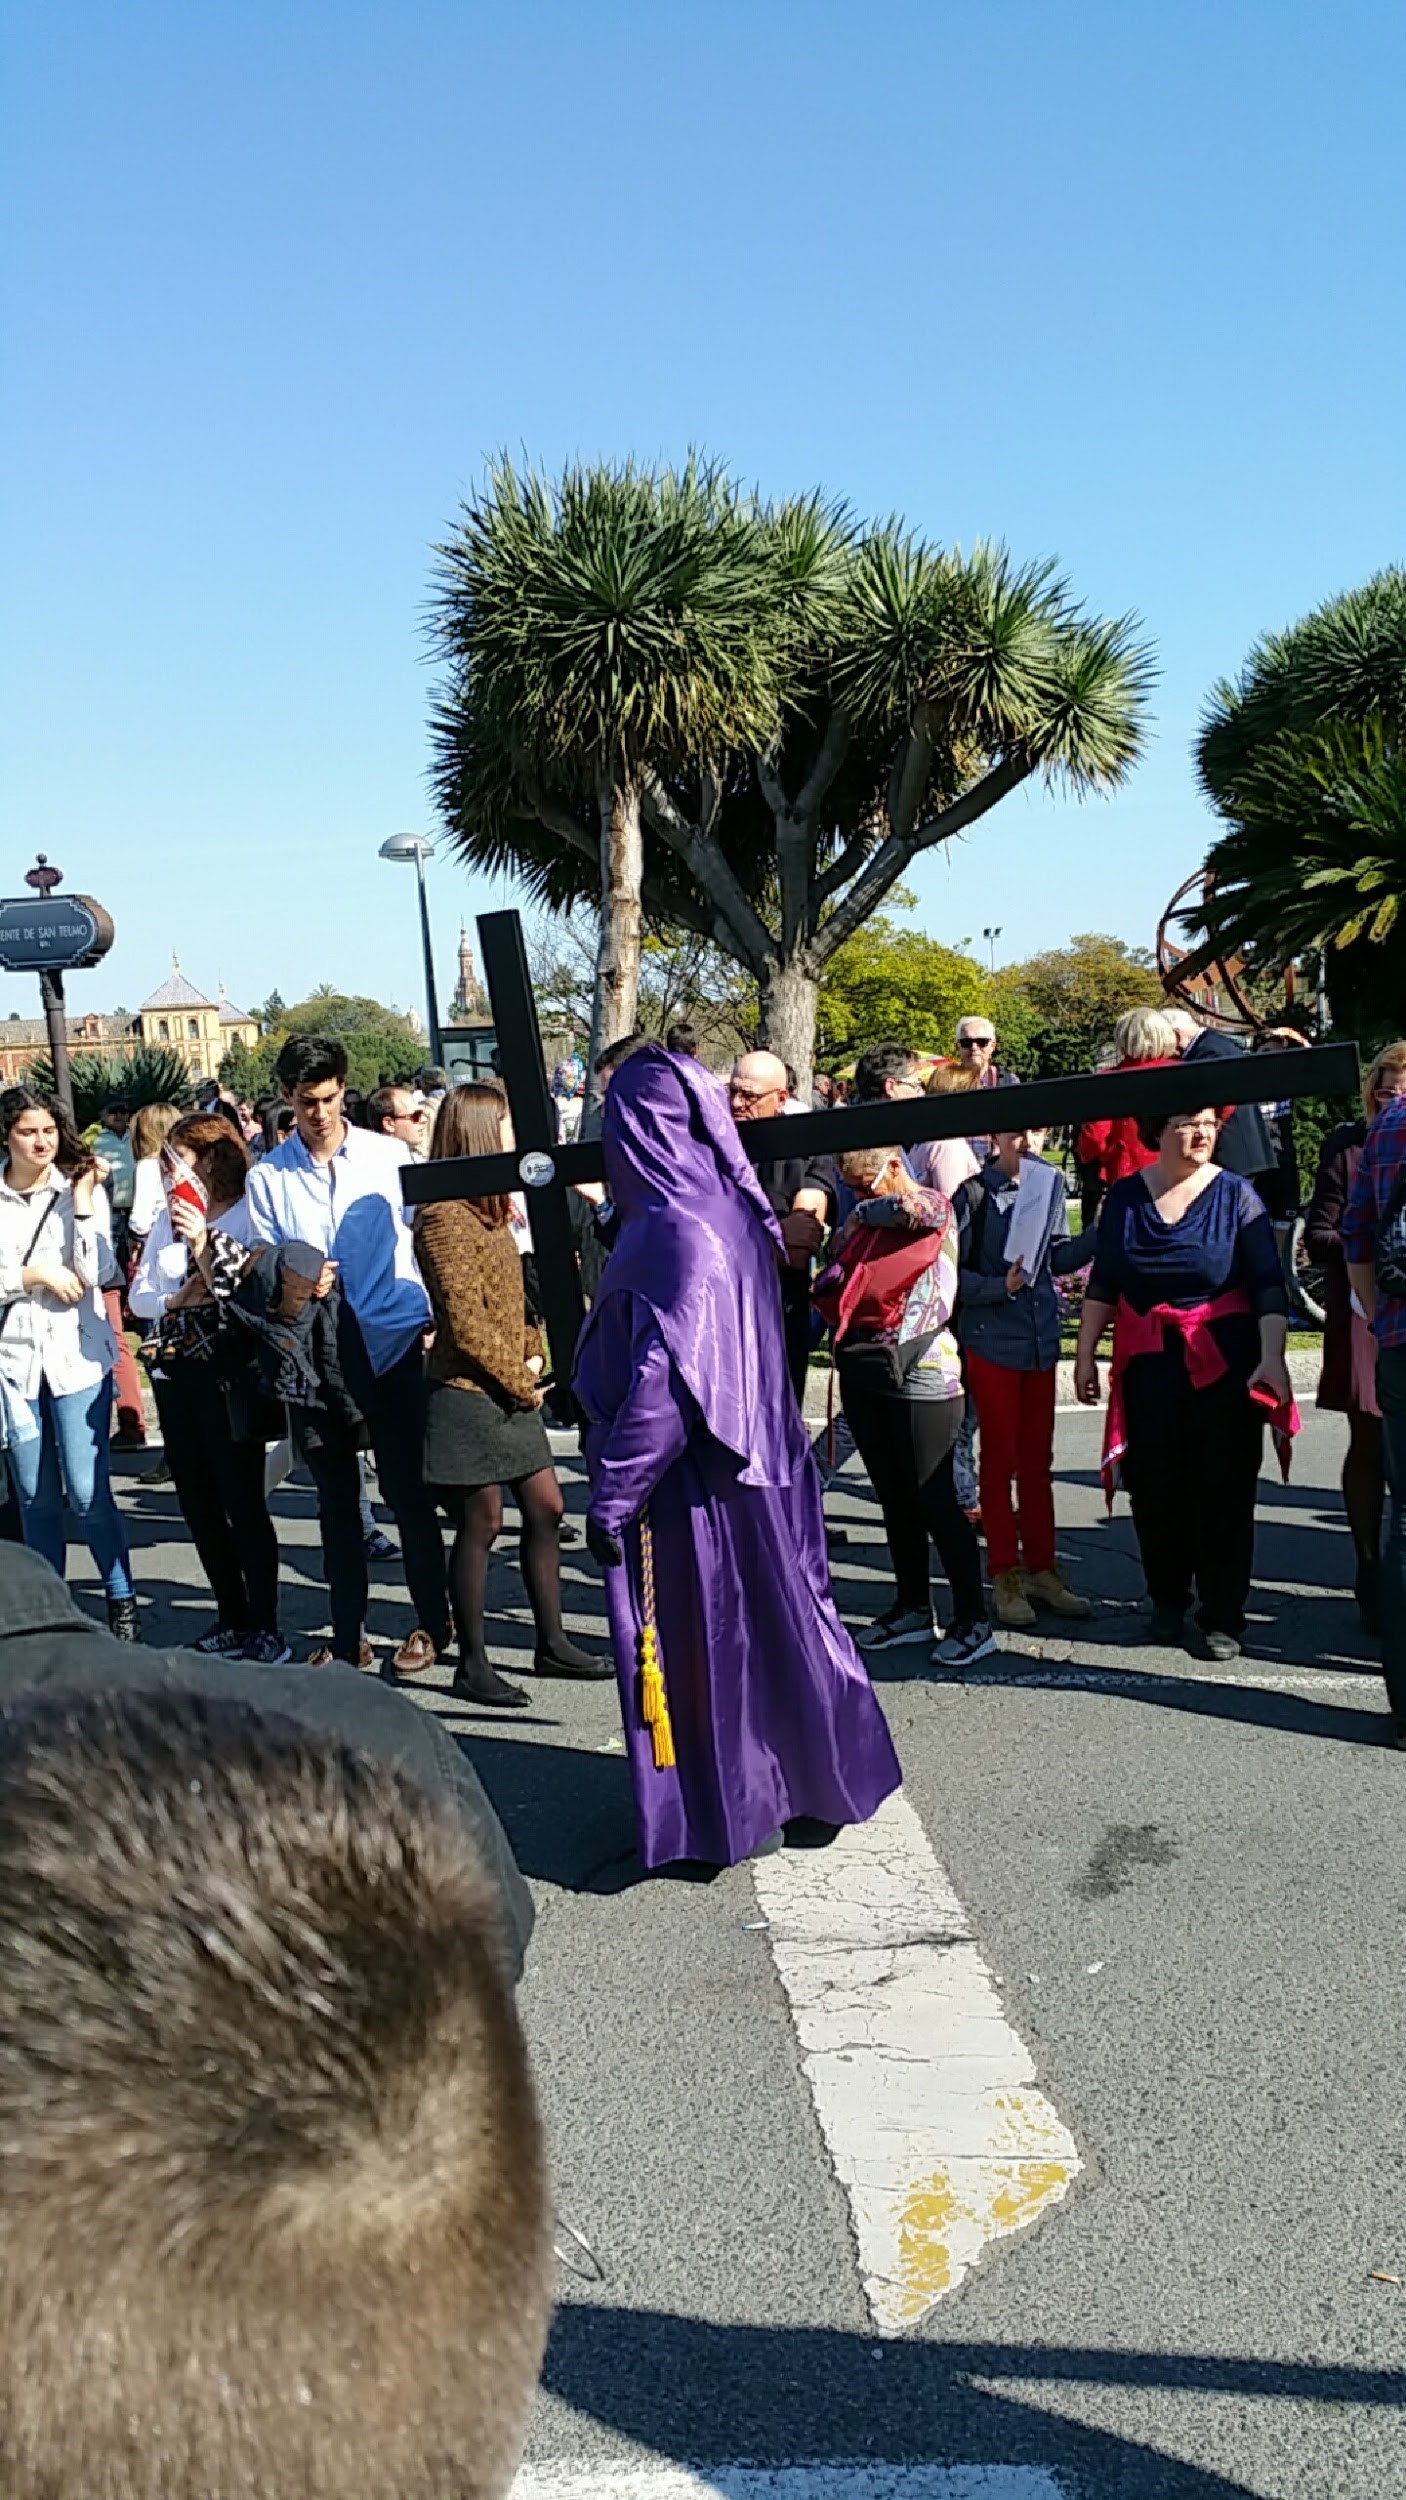 A member of the procession in a traditional capirote carries a crucifix as part of the celebration